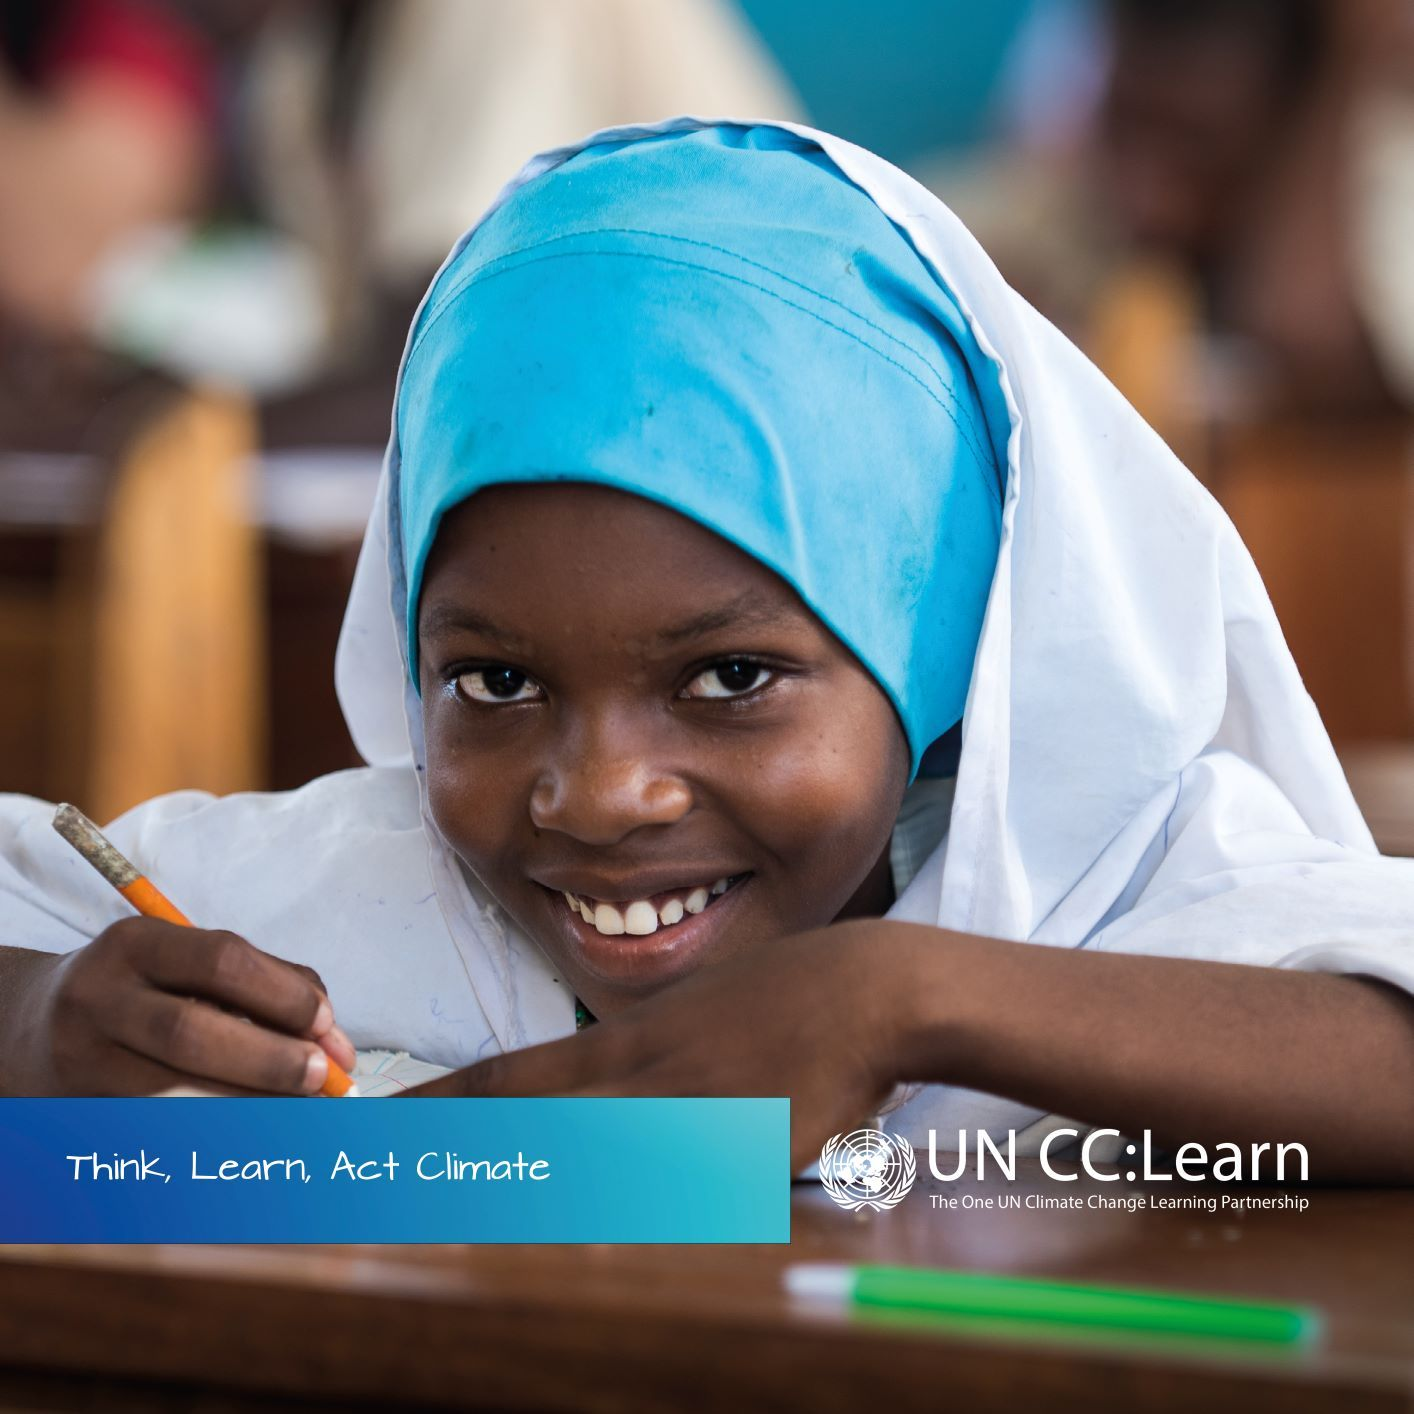 The One UN Climate Change Learning Partnership (UN CC:Learn)